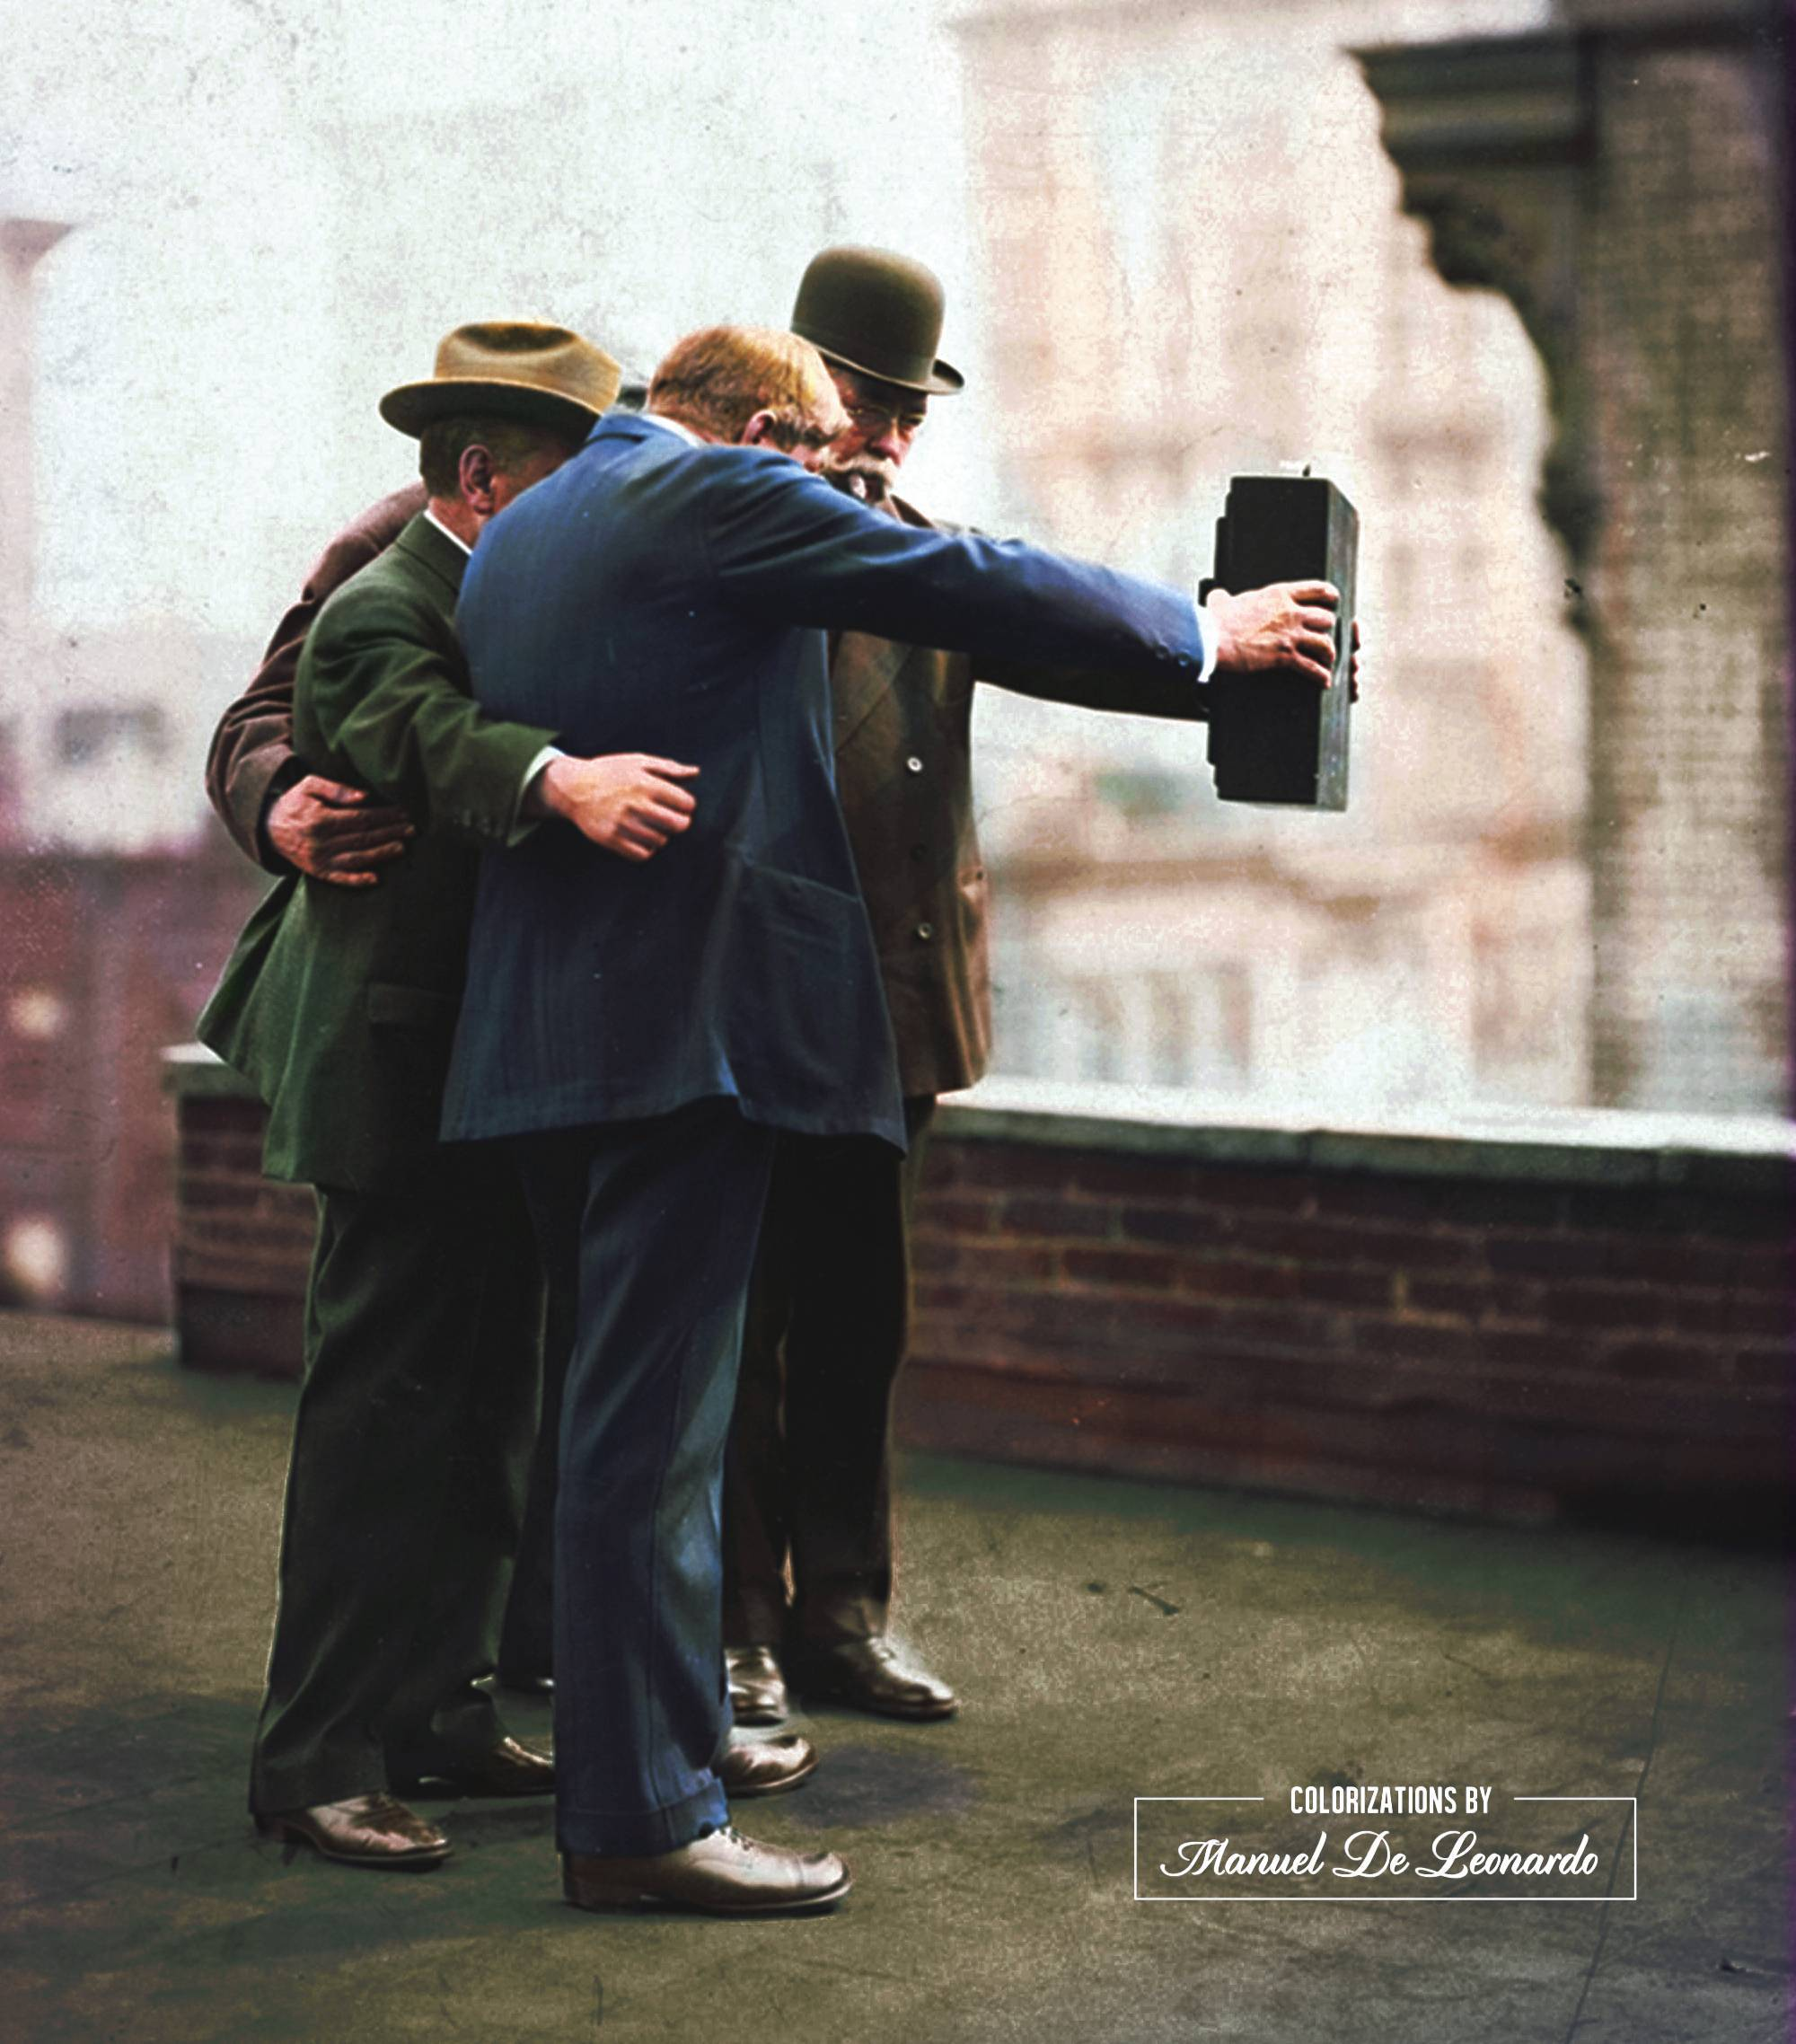 The first selfie ever.